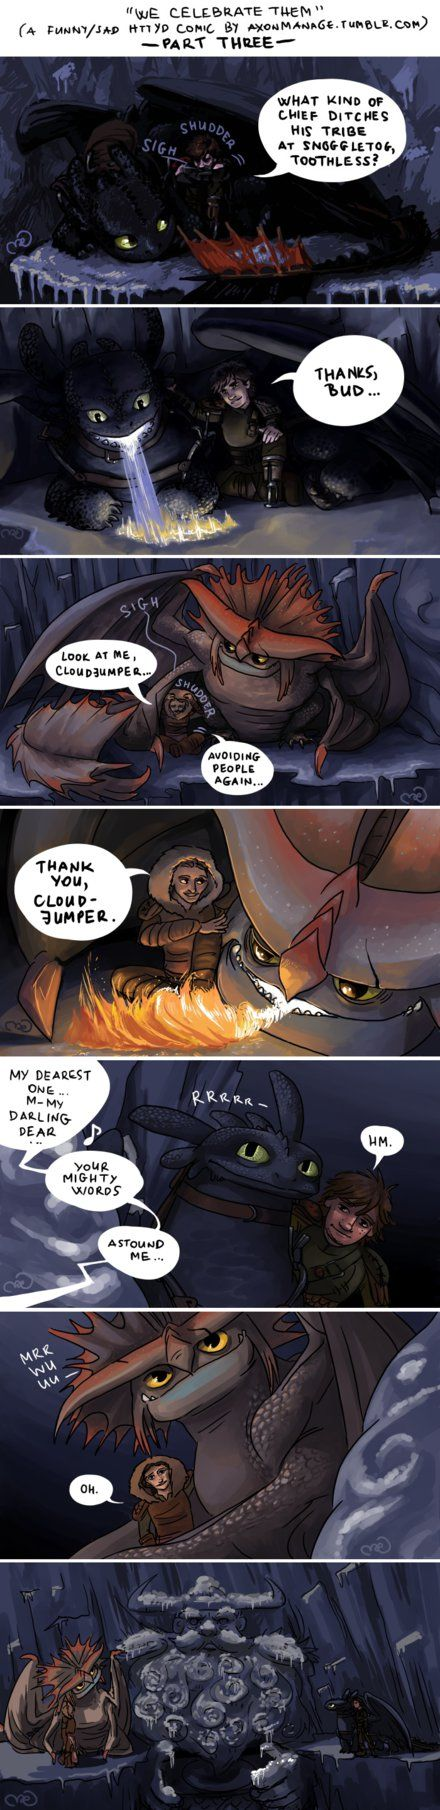 Part Three of a funny/sad HTTYD comic by axondrive on deviantART. I am not okay...